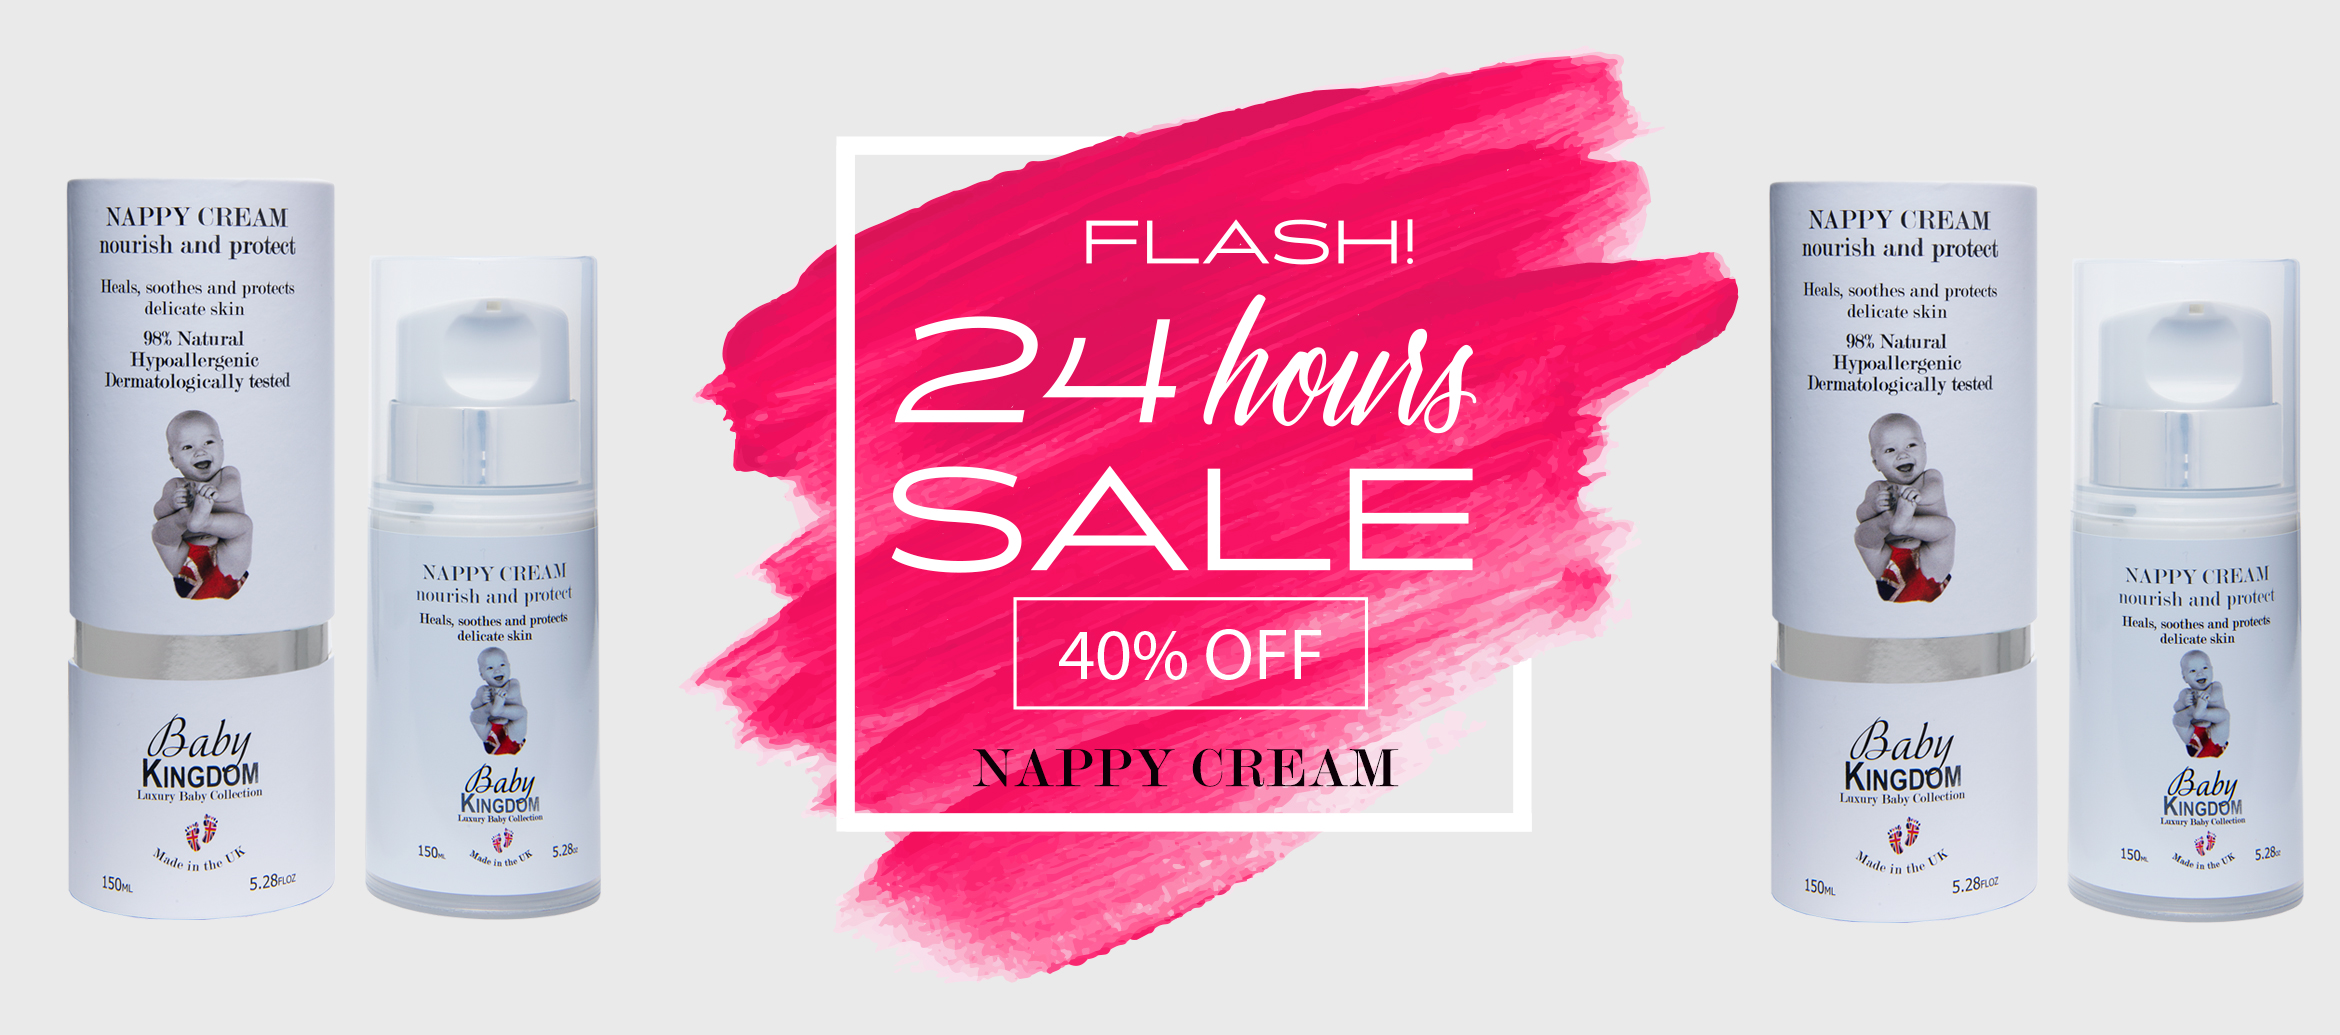 Weekly-offers-40%-off-BK-nappy-cream